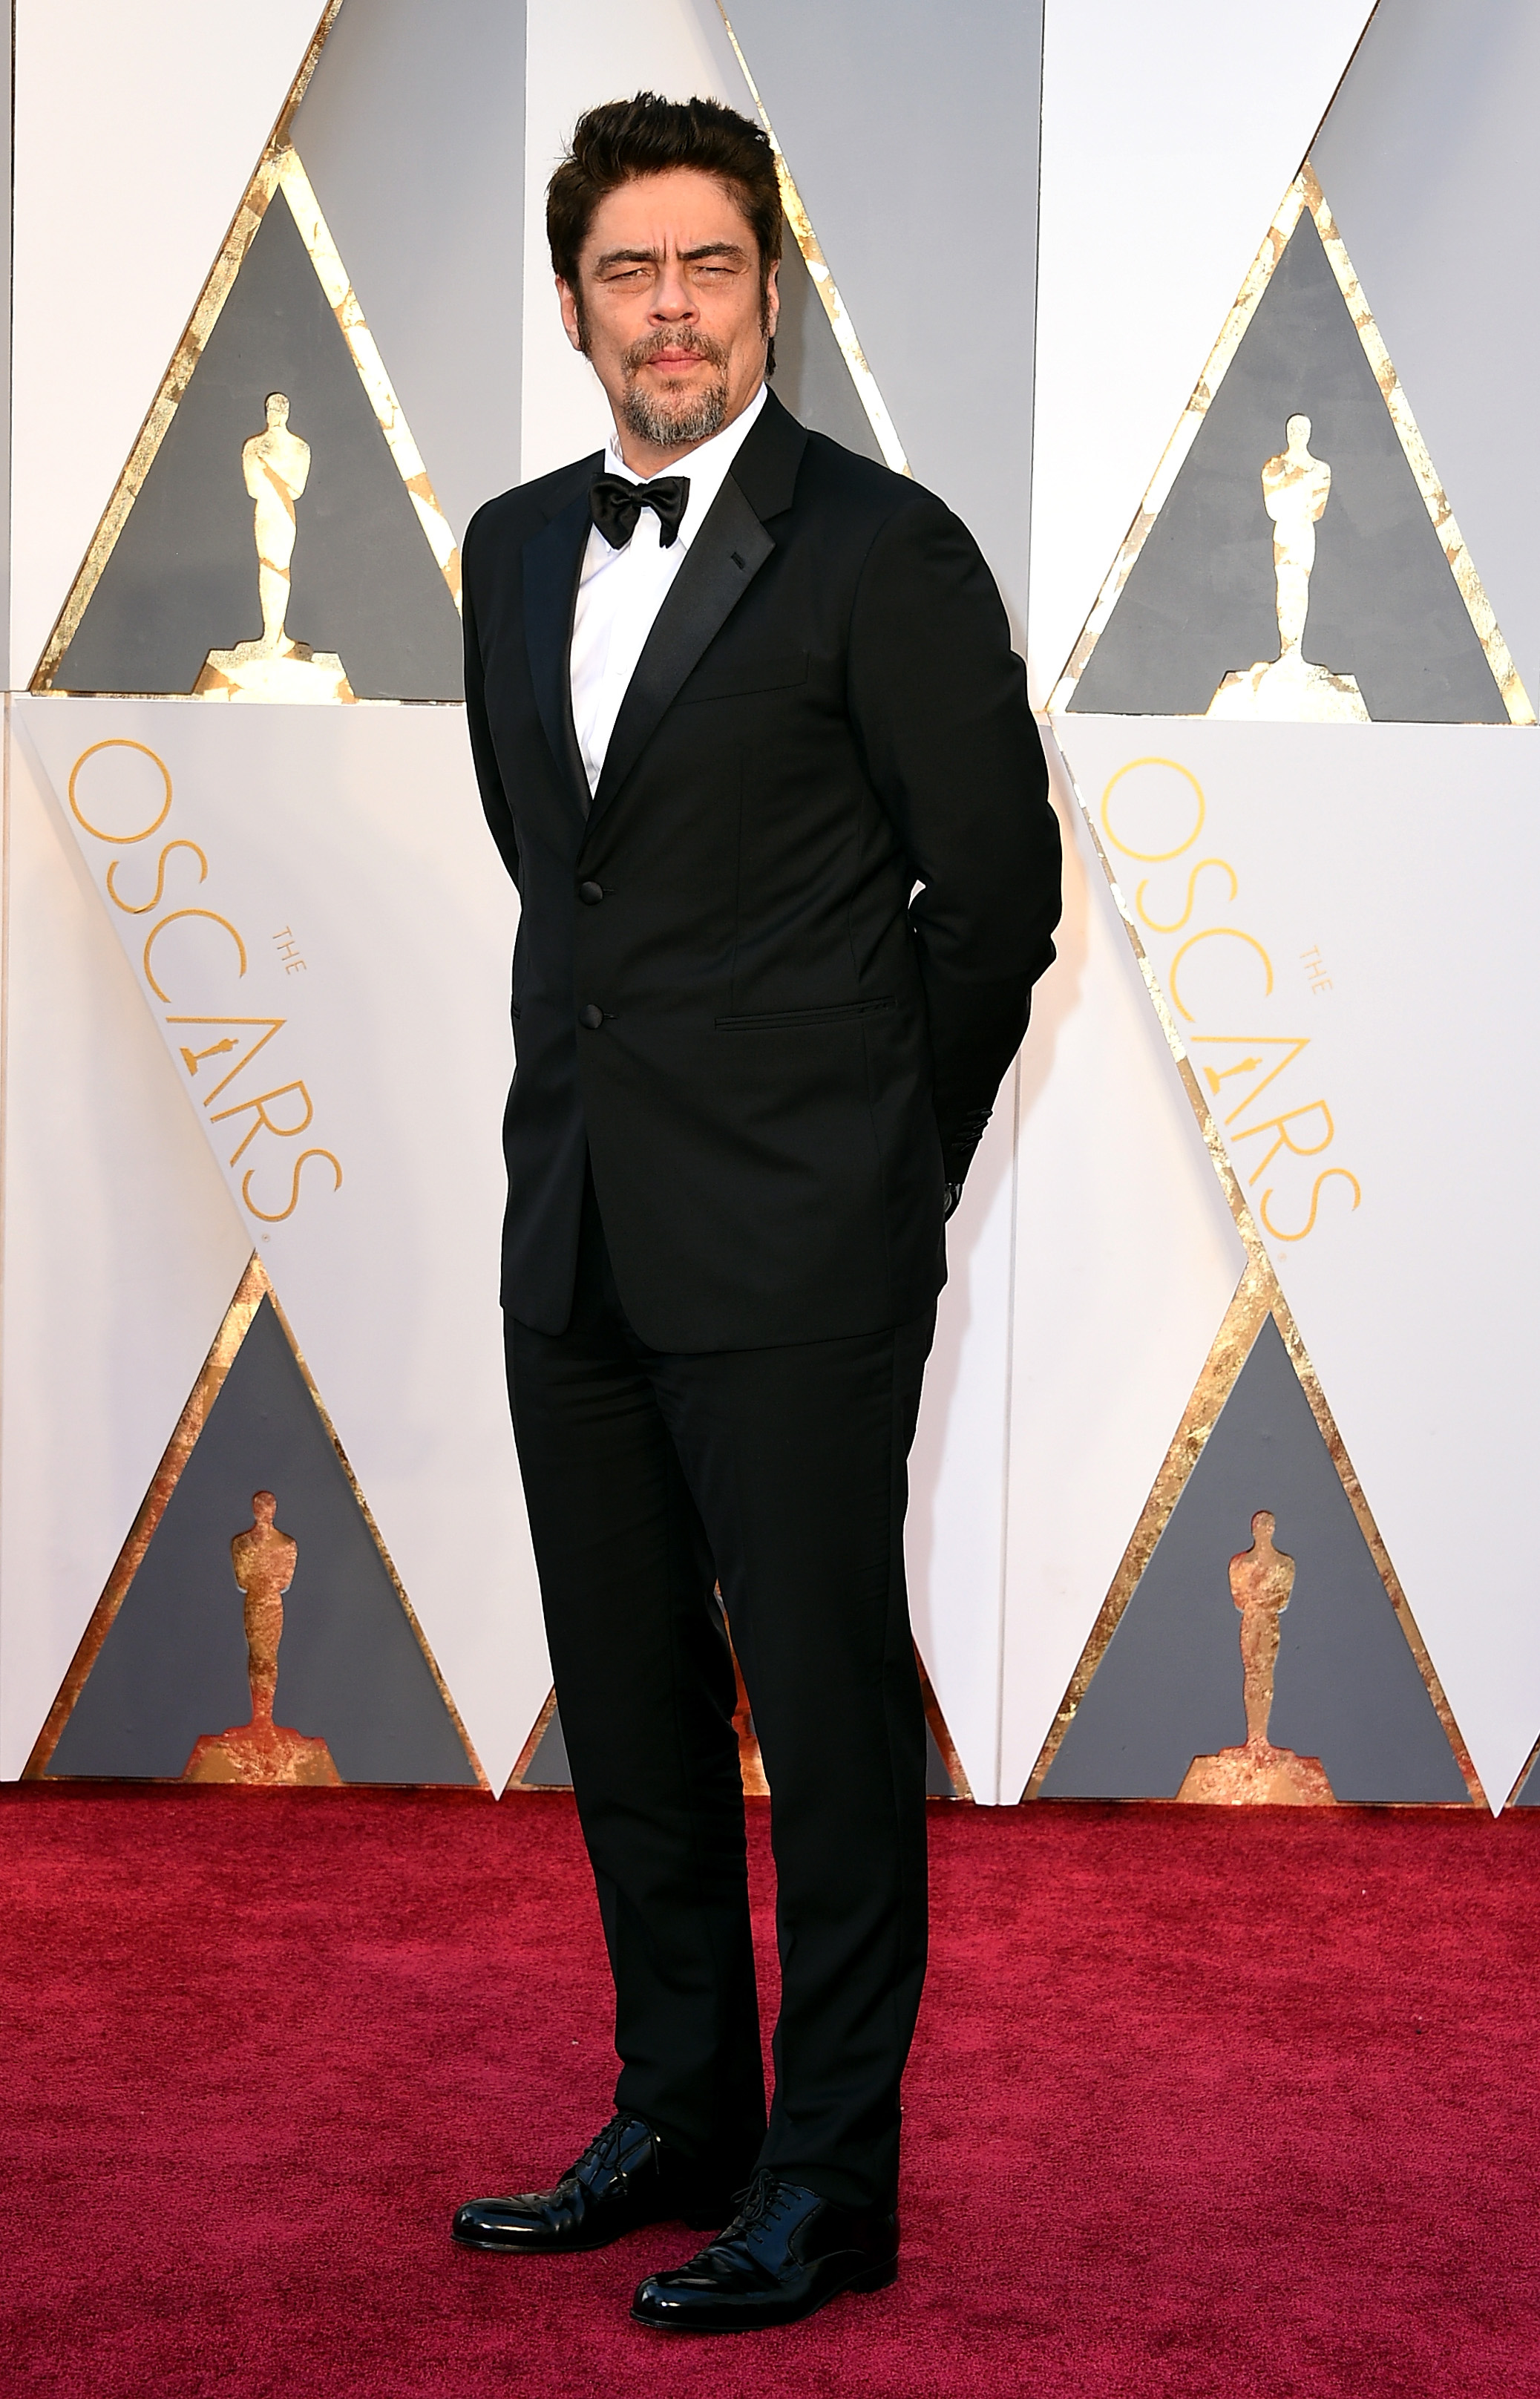 Benicio Del Toro attends the 88th Annual Academy Awards on Feb. 28, 2016 in Hollywood, Calif.